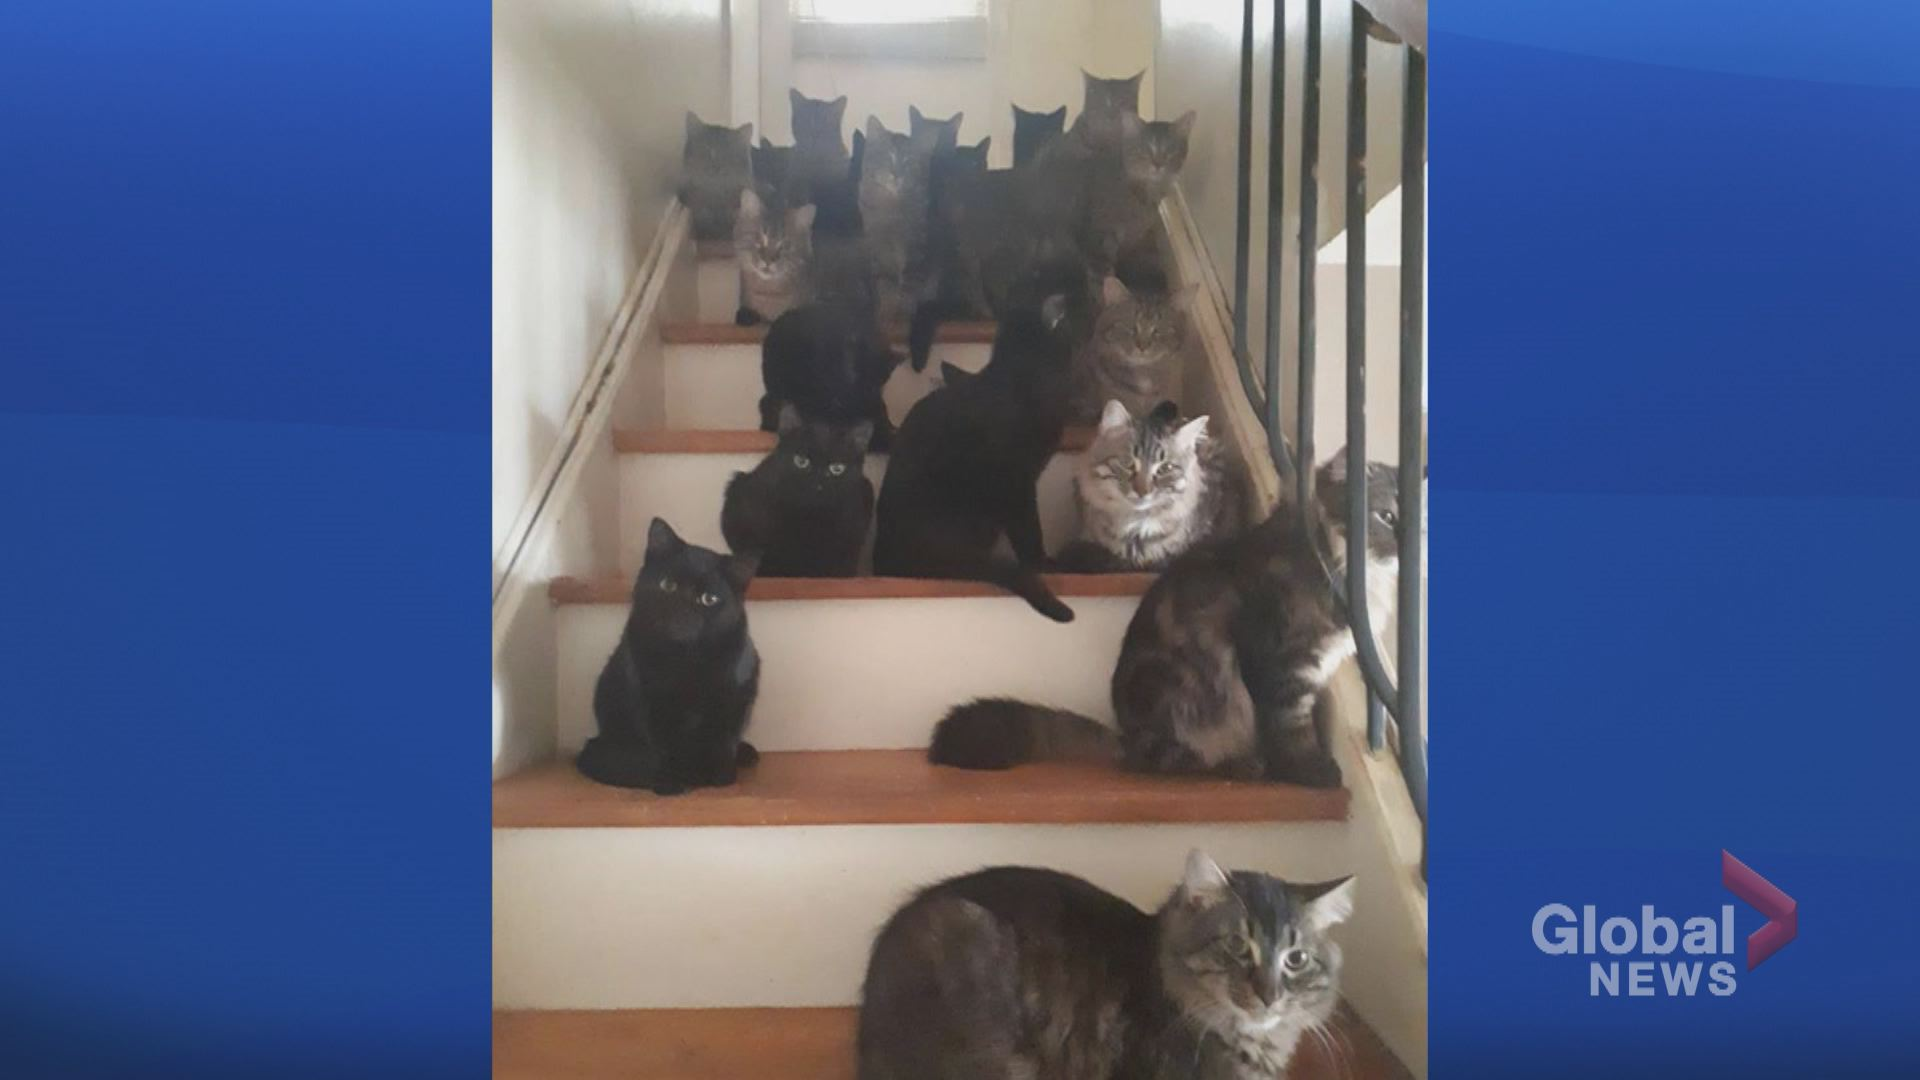 63d434ffcf More than 100 cats removed from Toronto home